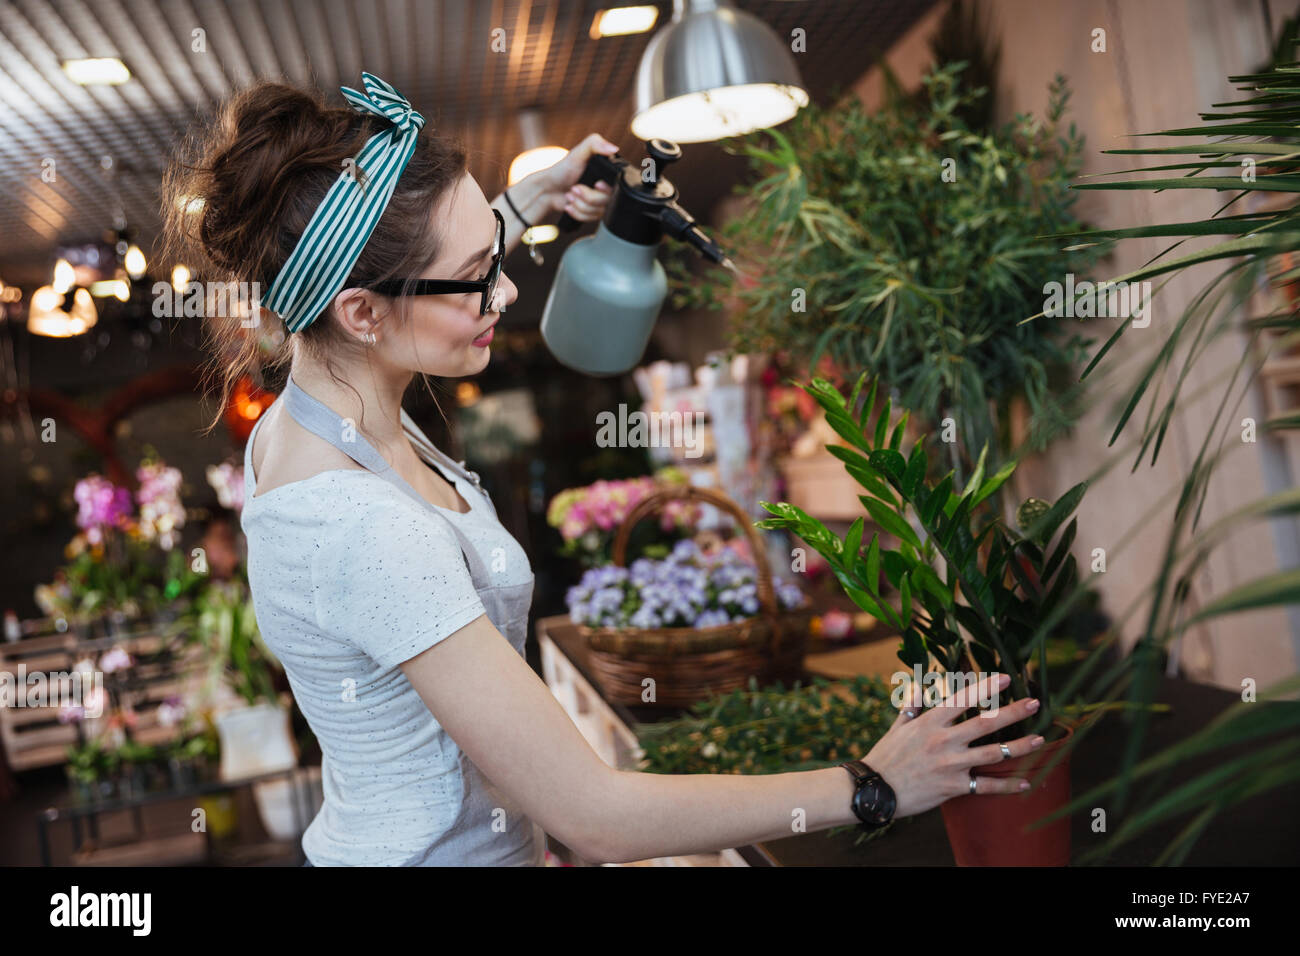 Smiling cute young woman florist standing and watering plants with water sprayer in flower shop - Stock Image